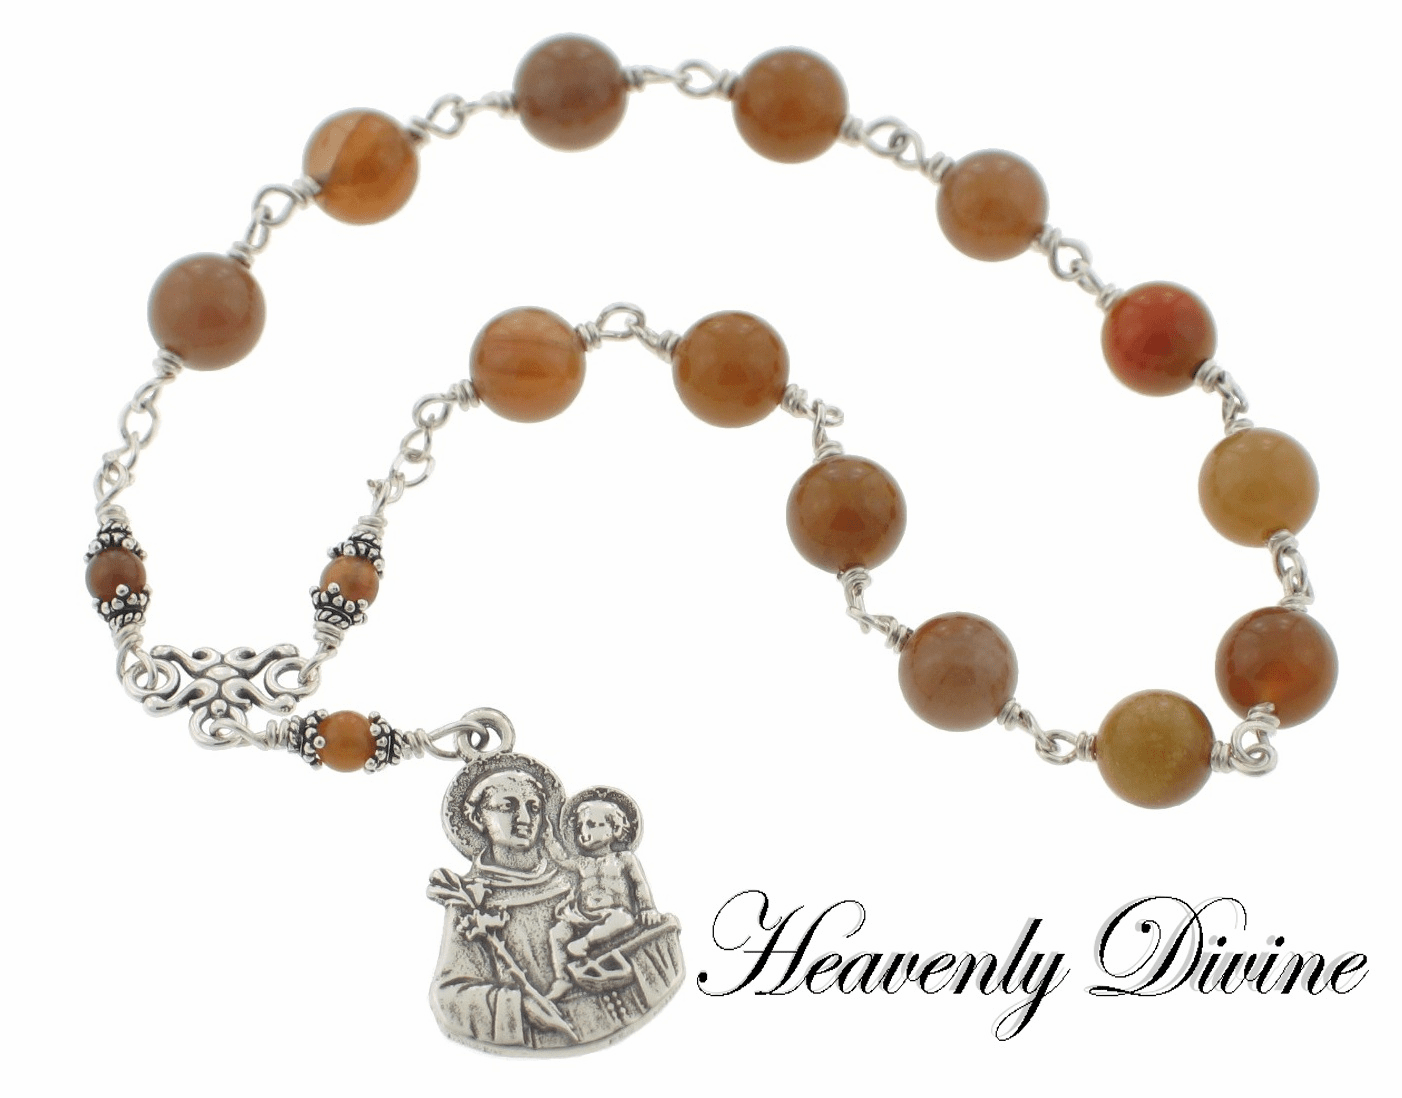 Handmade Saint Anthony of Padua Chaplet by Heavenly Divine